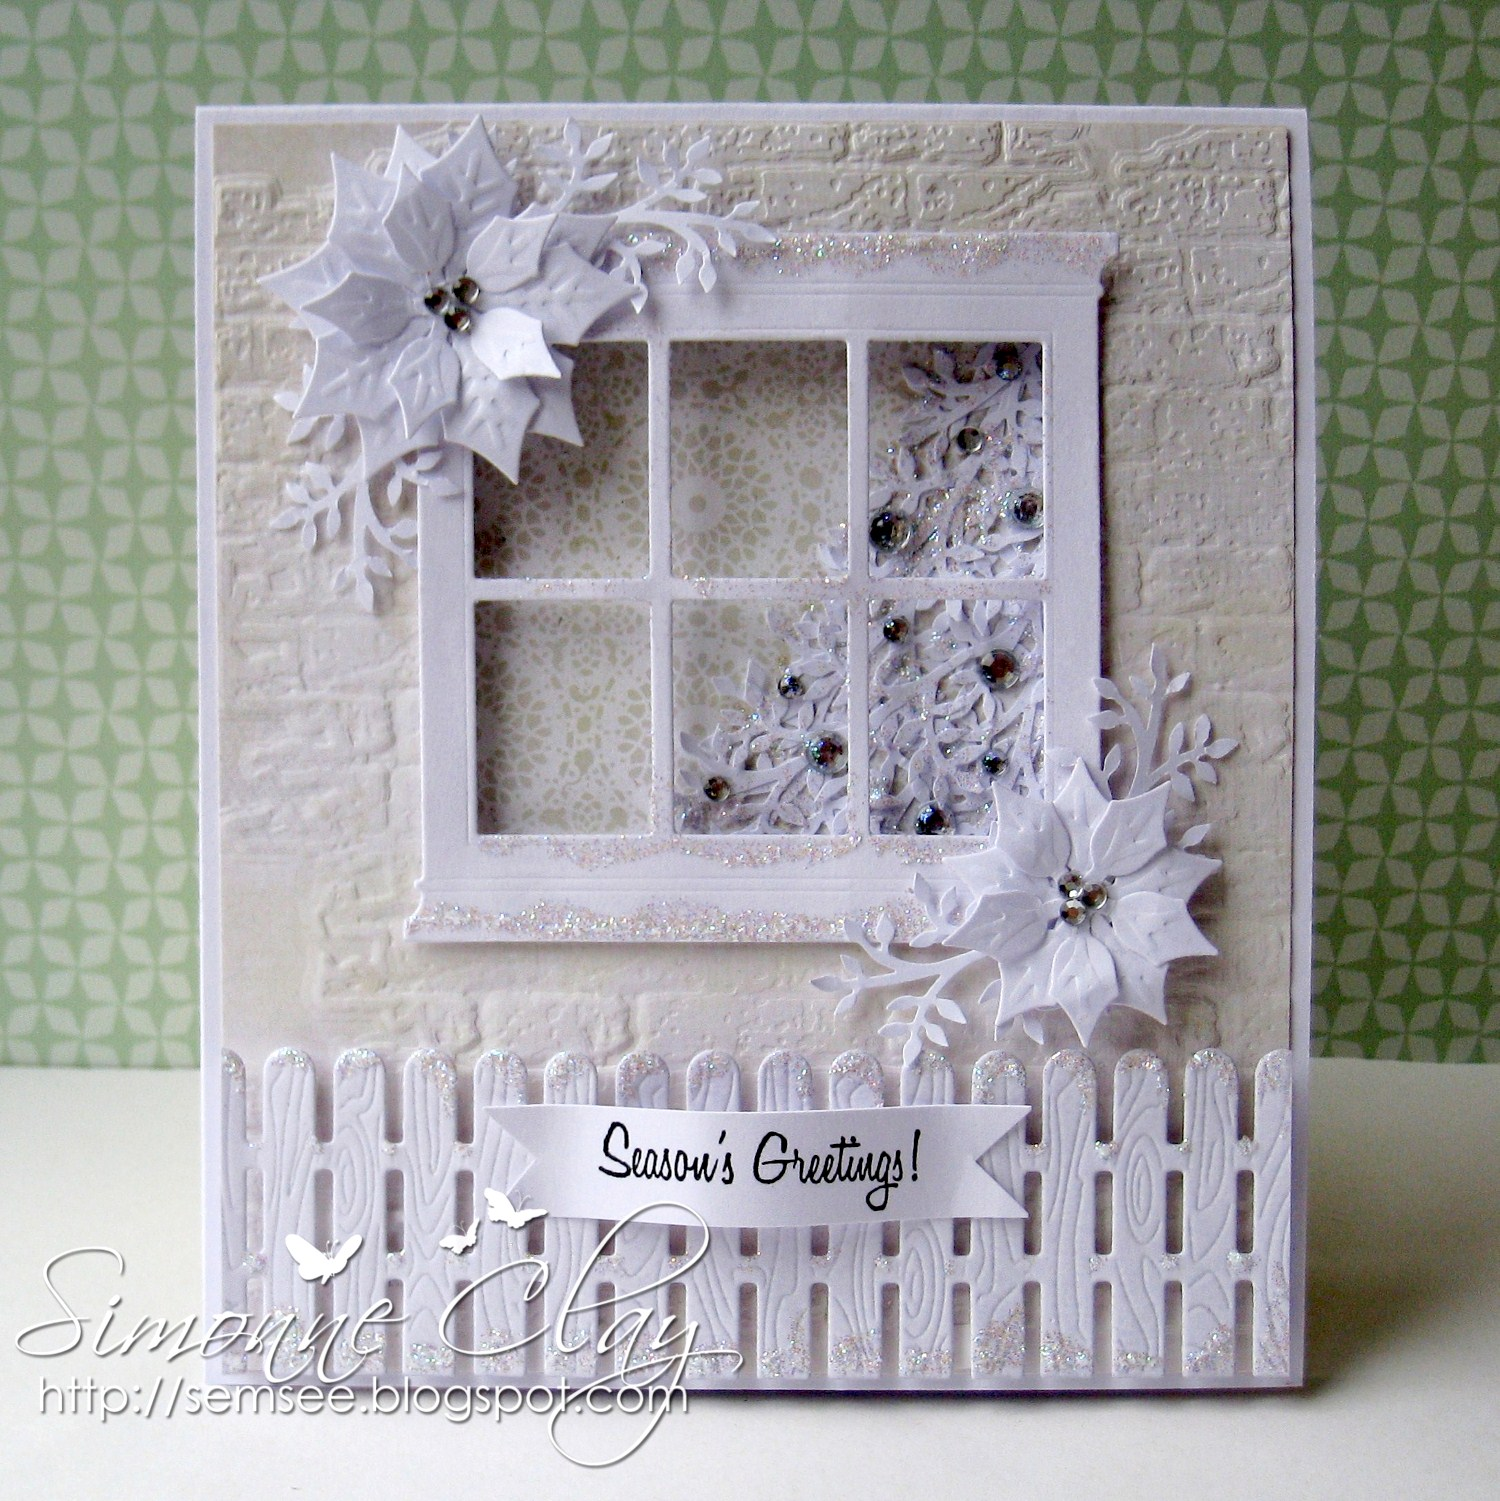 Simon Says Stamp Challenge: Simon Says...White on White